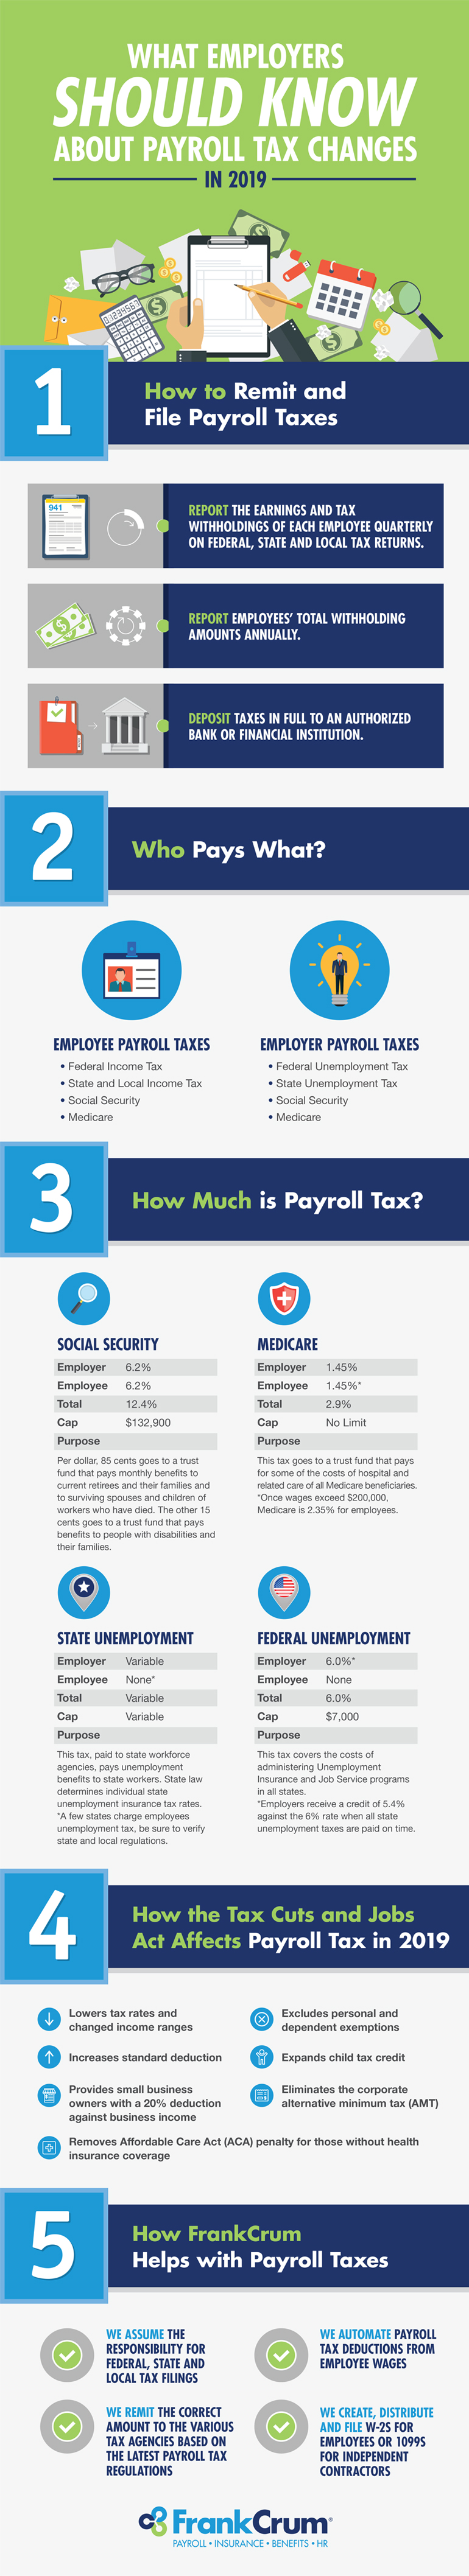 What Employers Should Know About Payroll Tax Changes